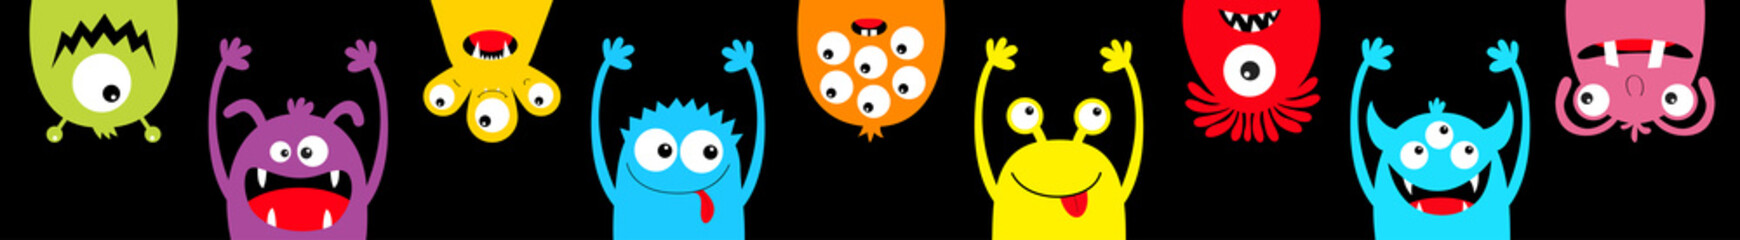 Happy Halloween. Hanging monster colorful silhouette head face icon set line. Eyes, tongue, tooth fang, hands up. Cute cartoon kawaii scary funny baby character. Black background. Flat design.